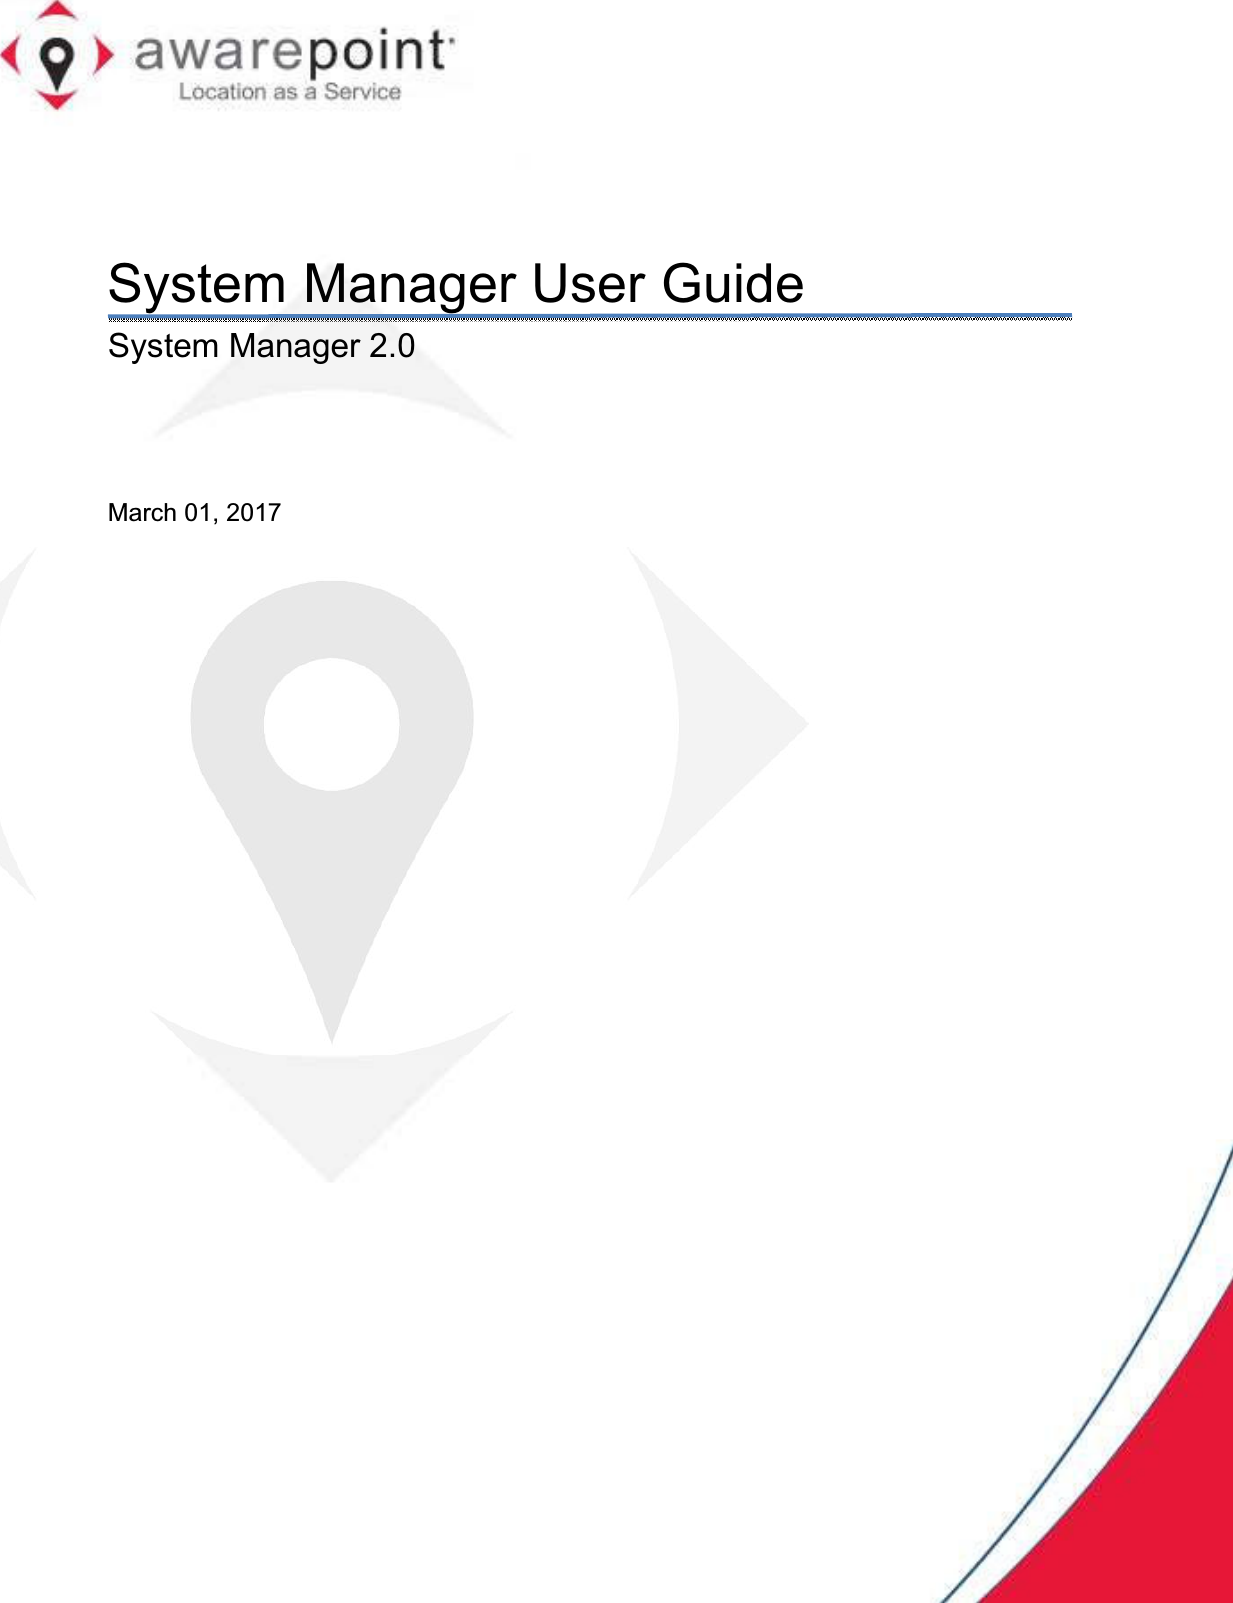 System Manager User Guide System Manager 2.0  March 01, 2017